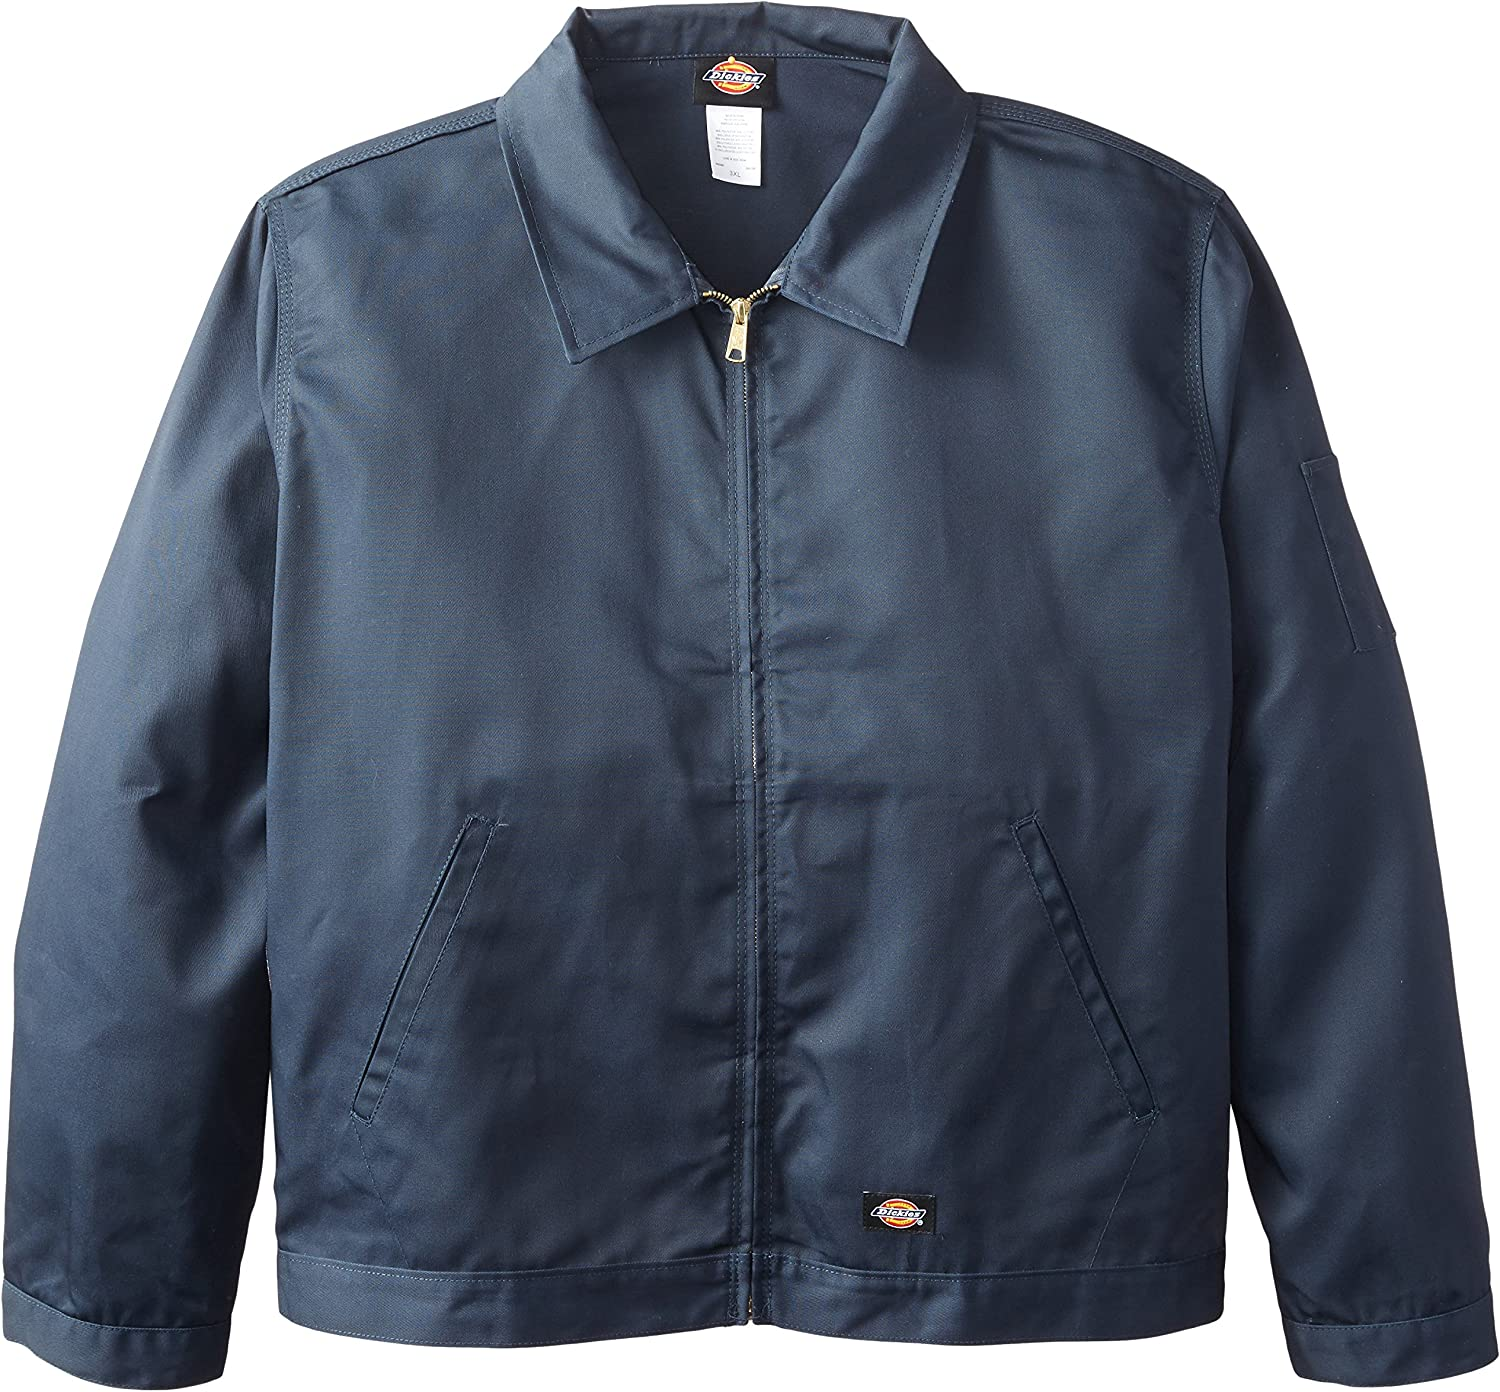 Dickies Men's Unlined Eisenhower Jacket A1sgmpueX3L